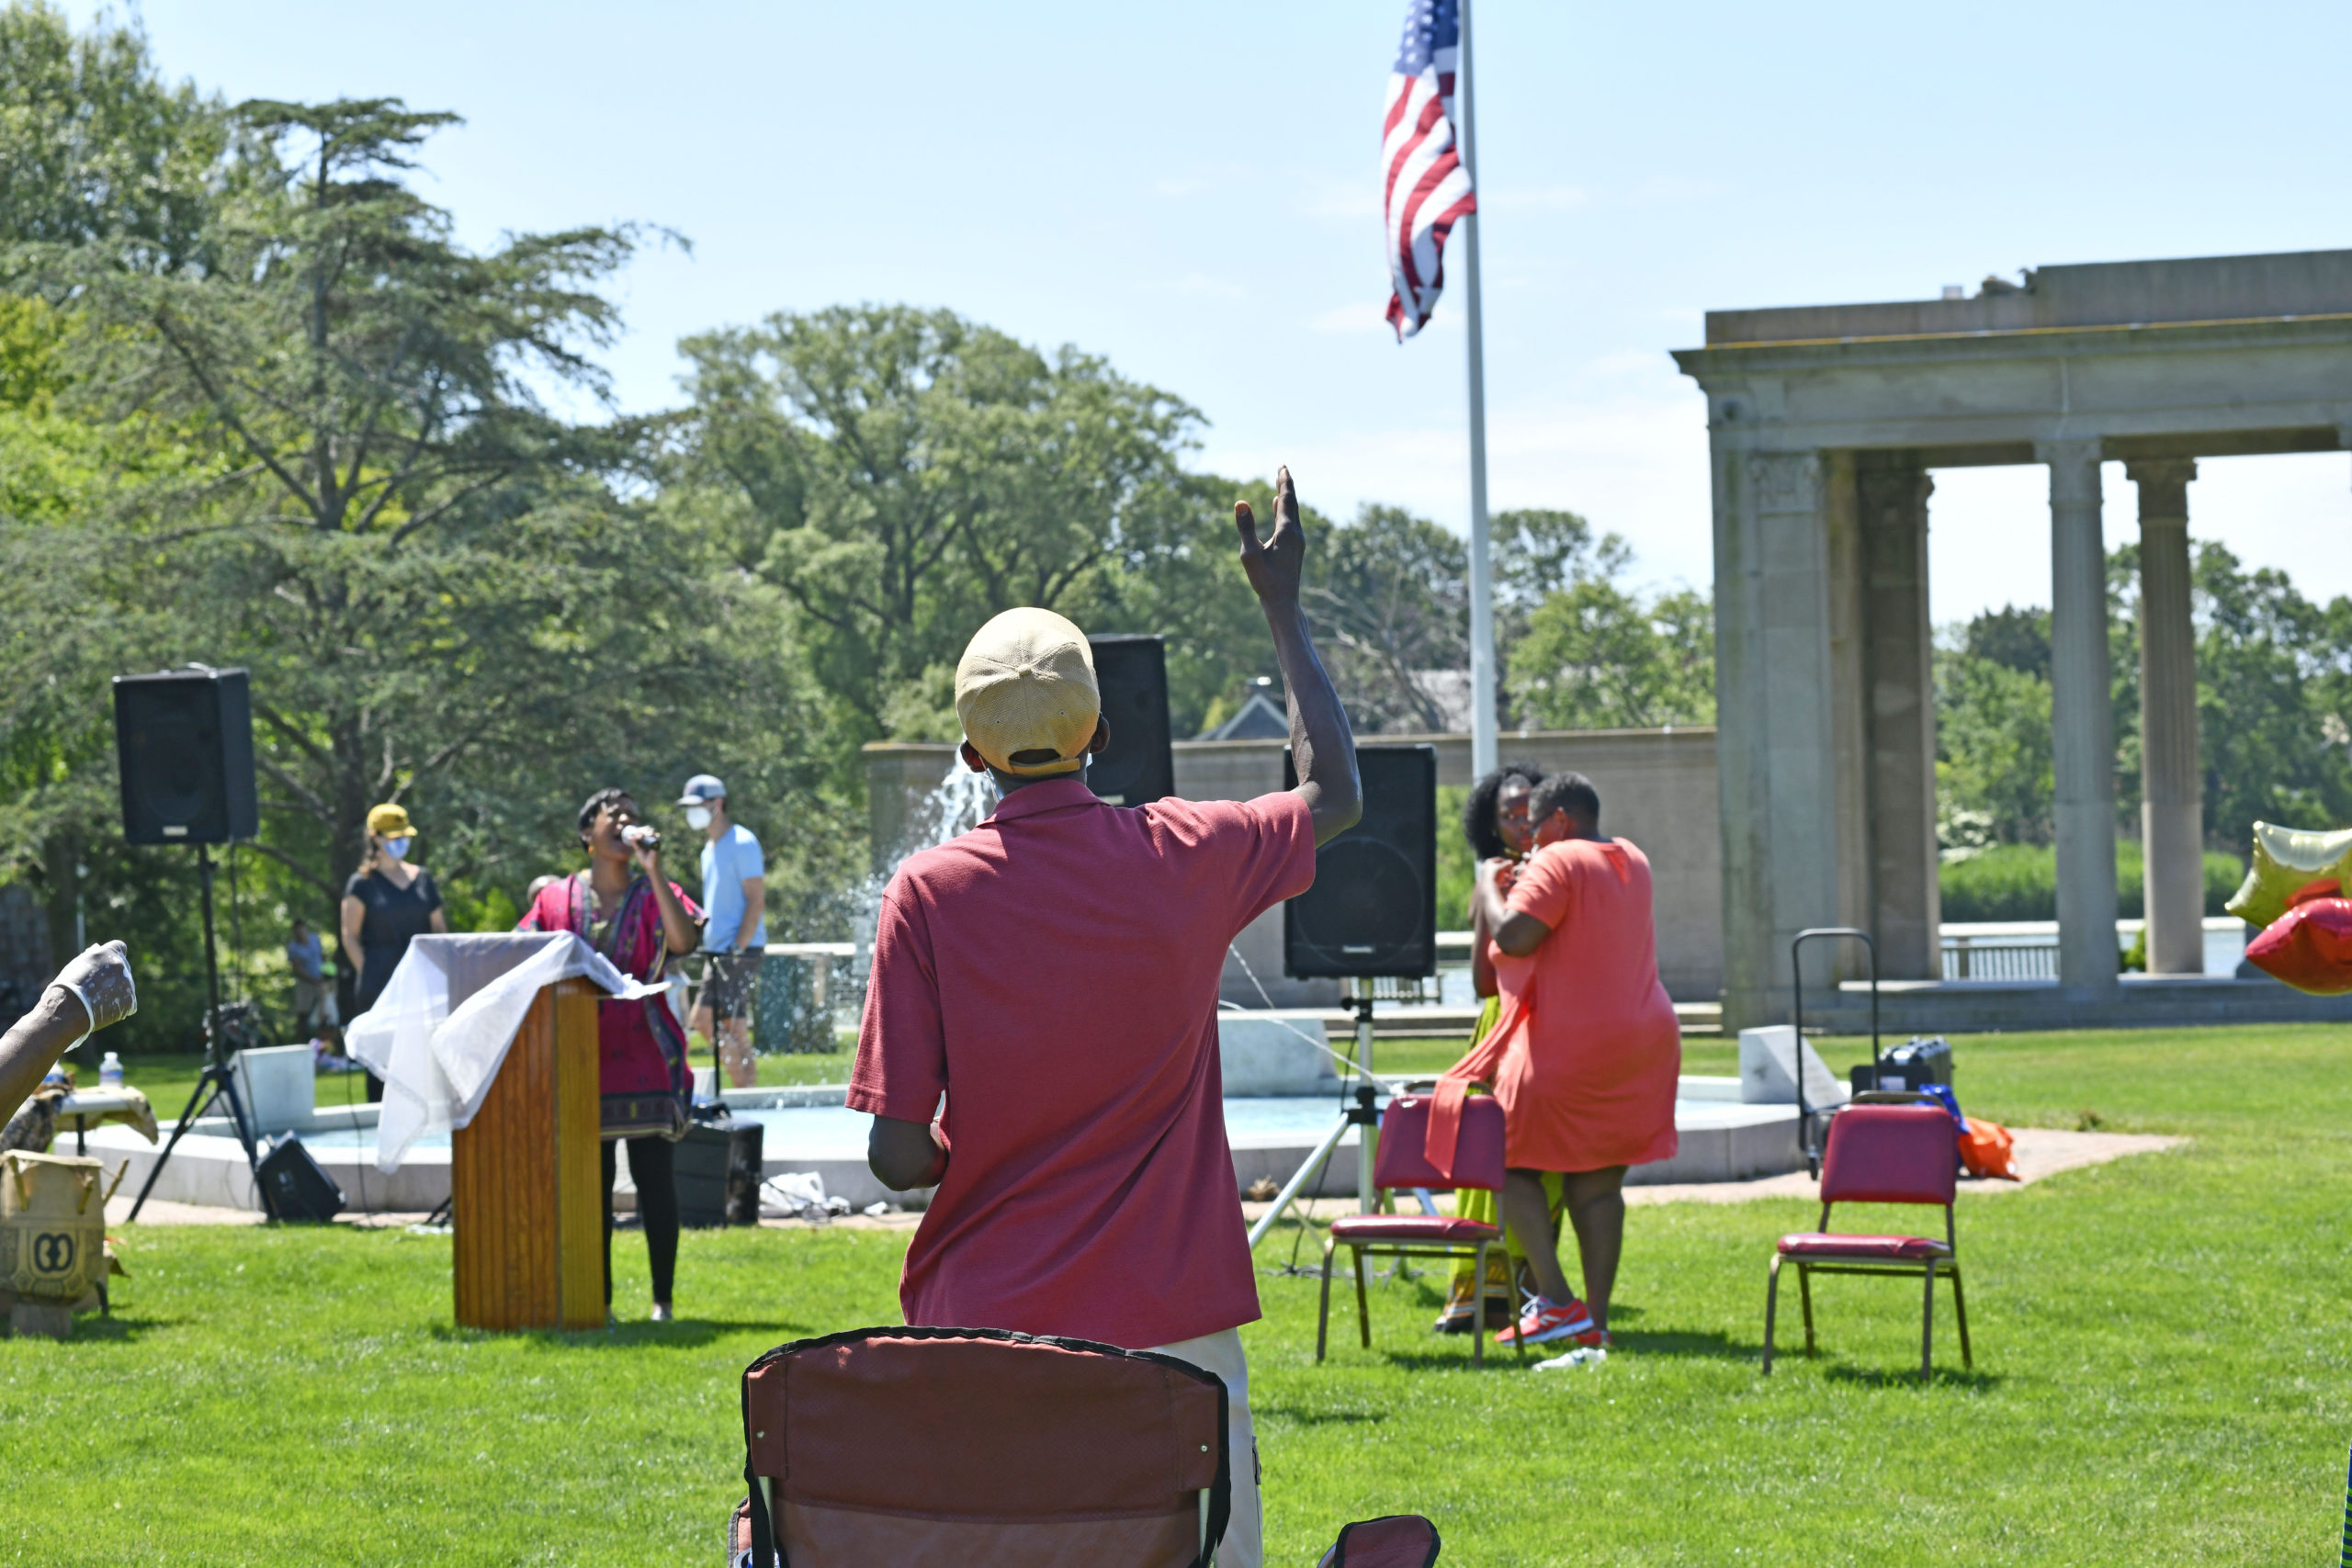 A Juneteeth celebration was held in Agawam Park on Friday with speakers, music and food. Originating in Texas, Juneteenth is now celebrated annually on the 19th of June and commemorates Union army general Gordon Granger announcing federal orders in Galveston on June 19, 1865, stating that all slaves in Texas were free. DANA SHAW